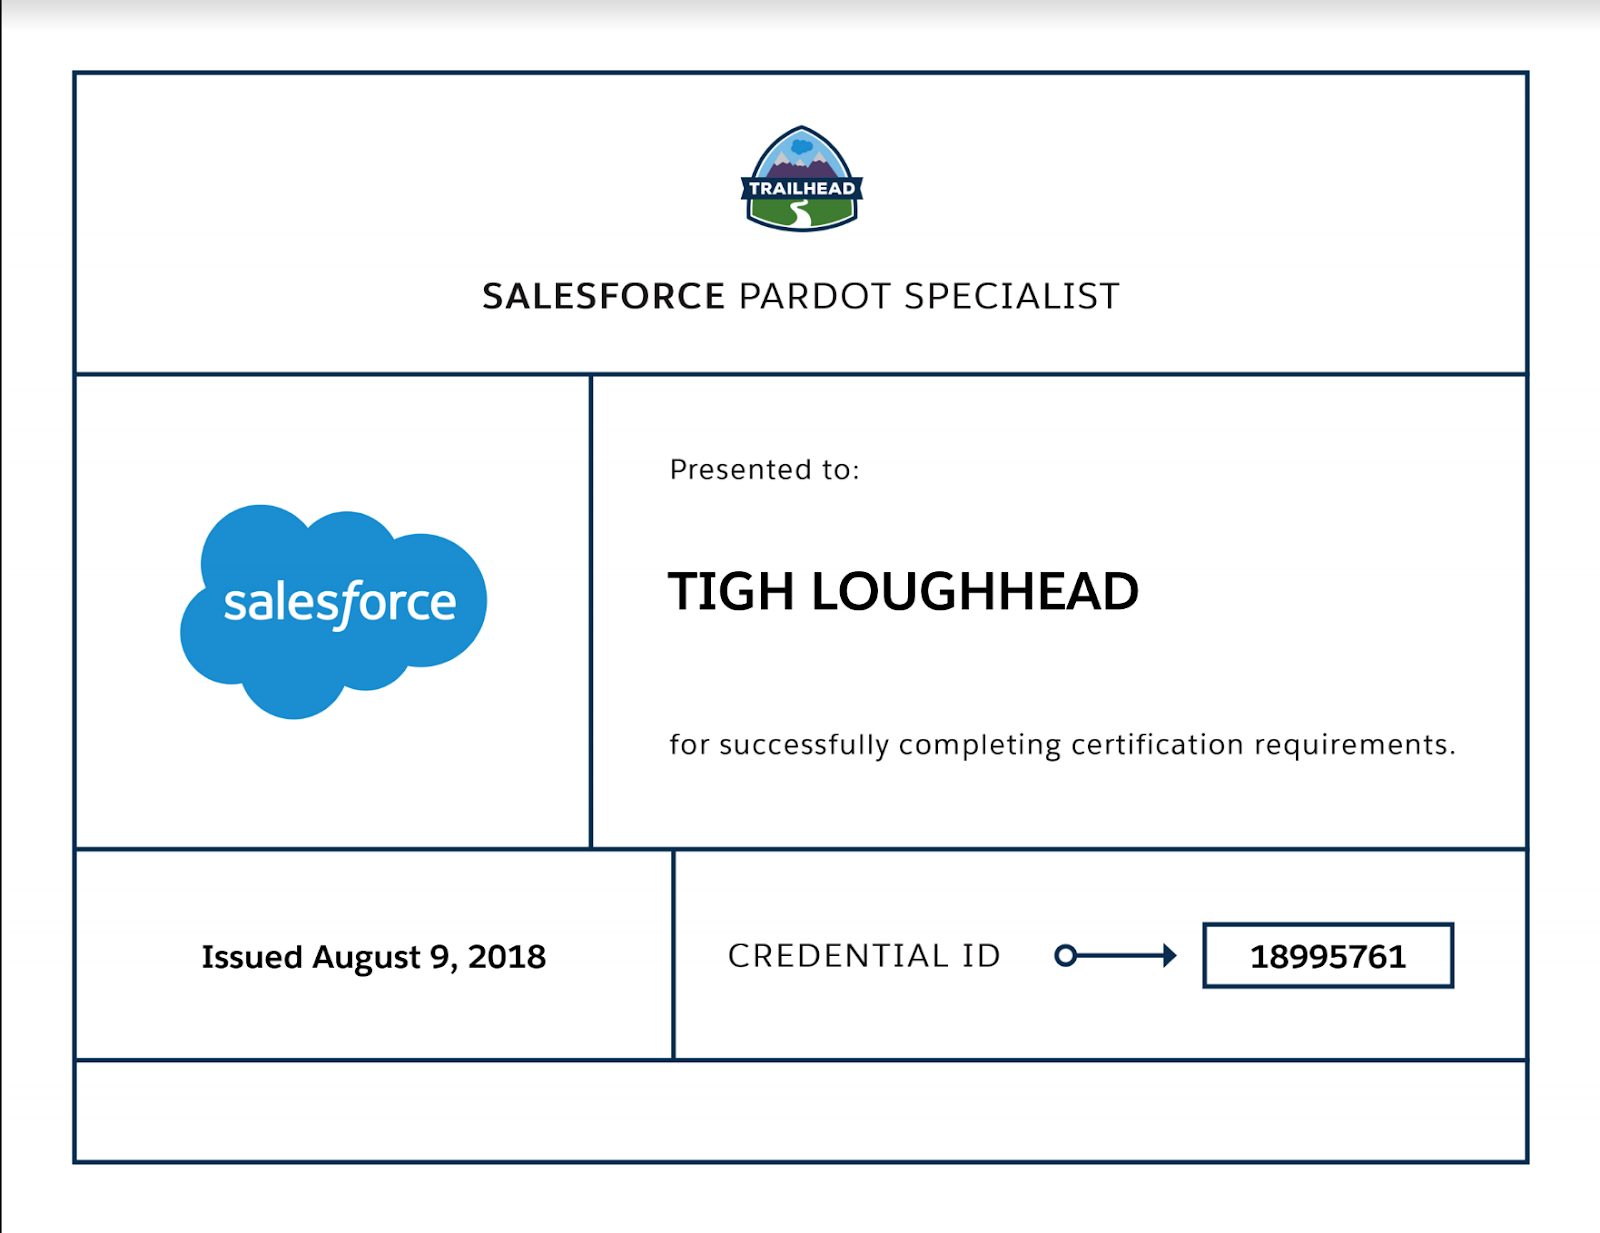 Tigh Loughhead is a Certified Salesforce Pardot Specialist